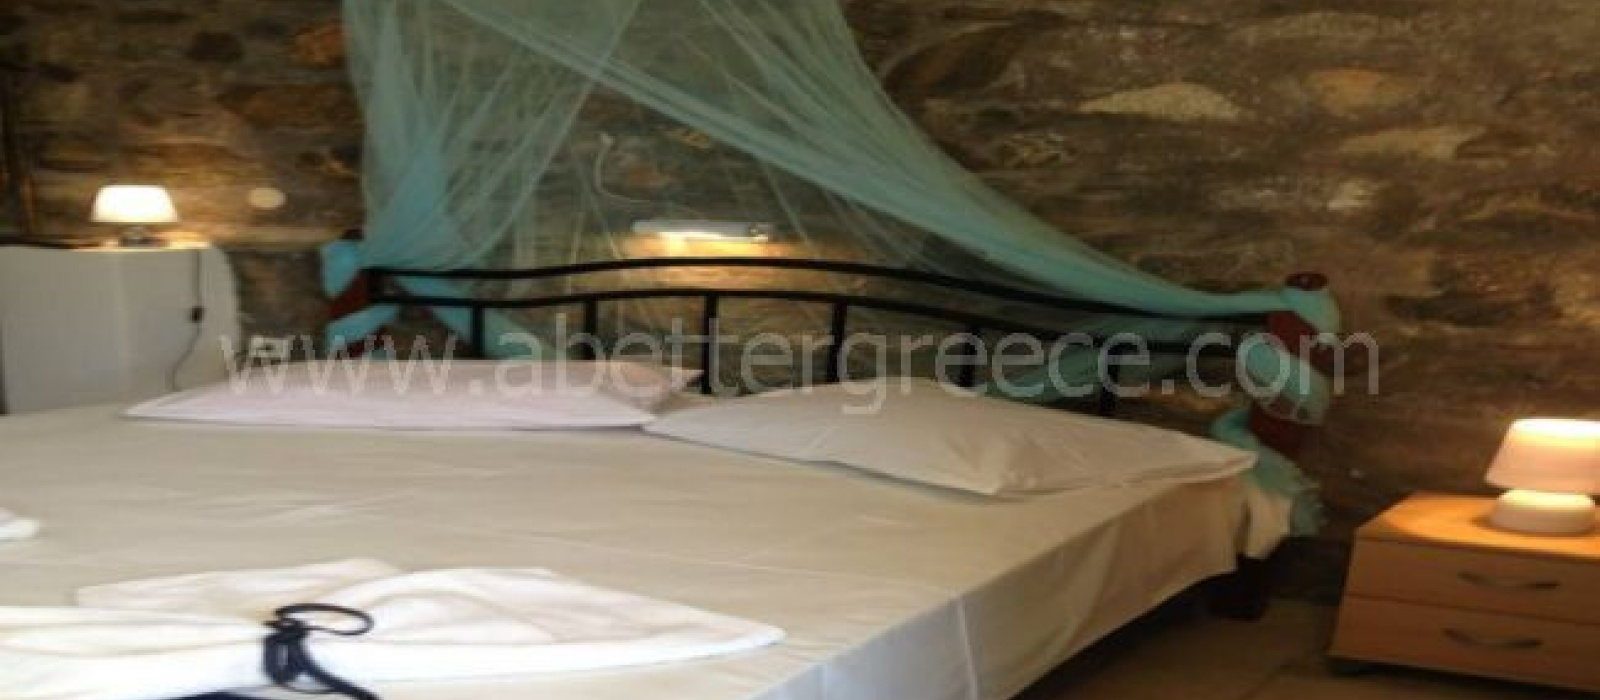 1 Bedrooms, Apartment, Vacation Rental, 1 Bathrooms, Listing ID 1206, Schinnousa, Greece,